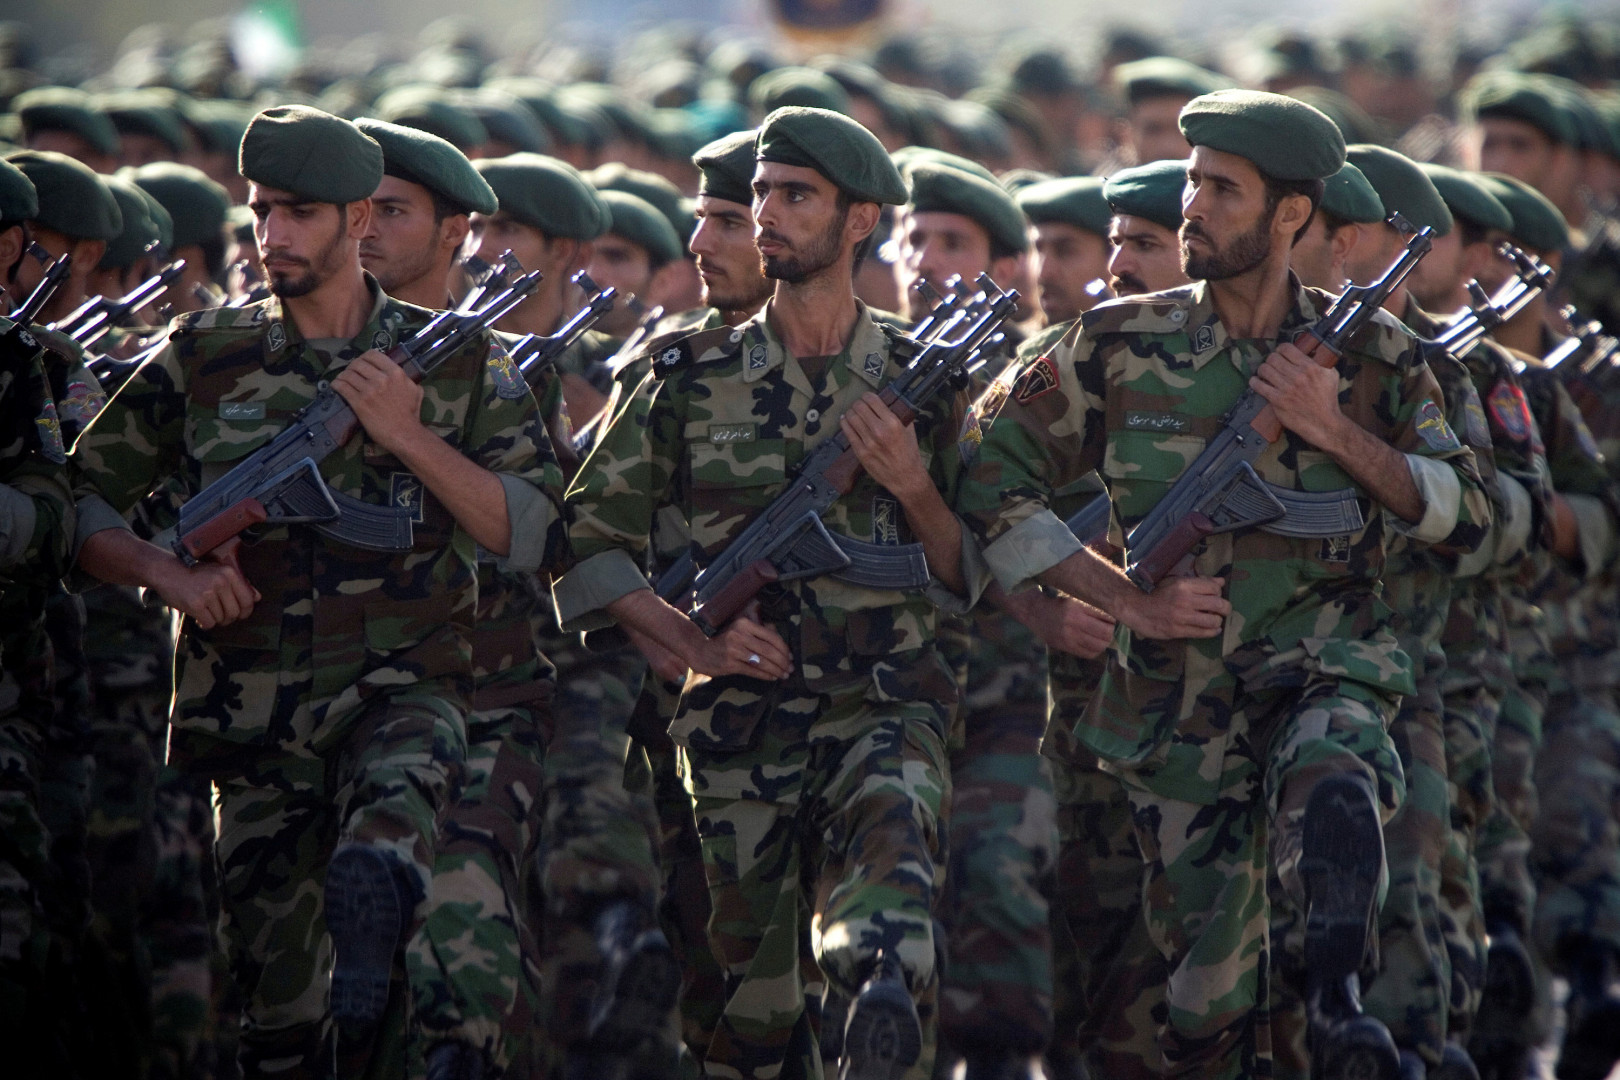 Iran launchs a new missile base